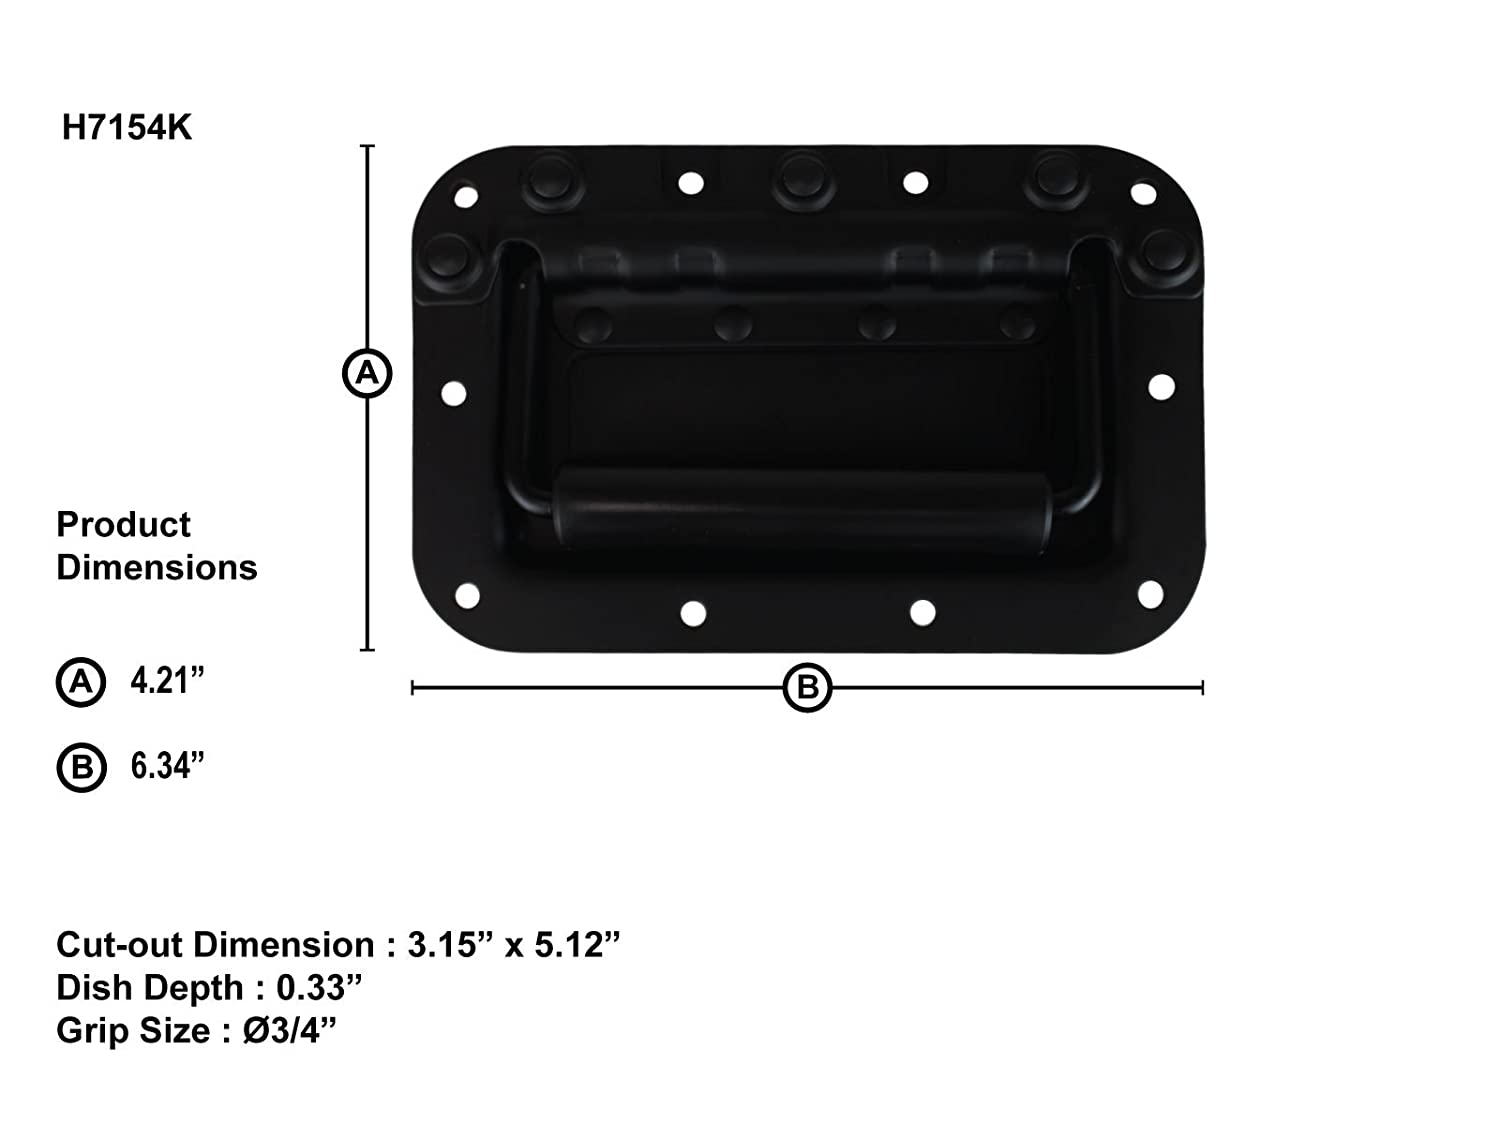 Penn Elcom H7154K Spring Loaded Rivet Protected Recessed Handle for Rolling and Flight Cases Black